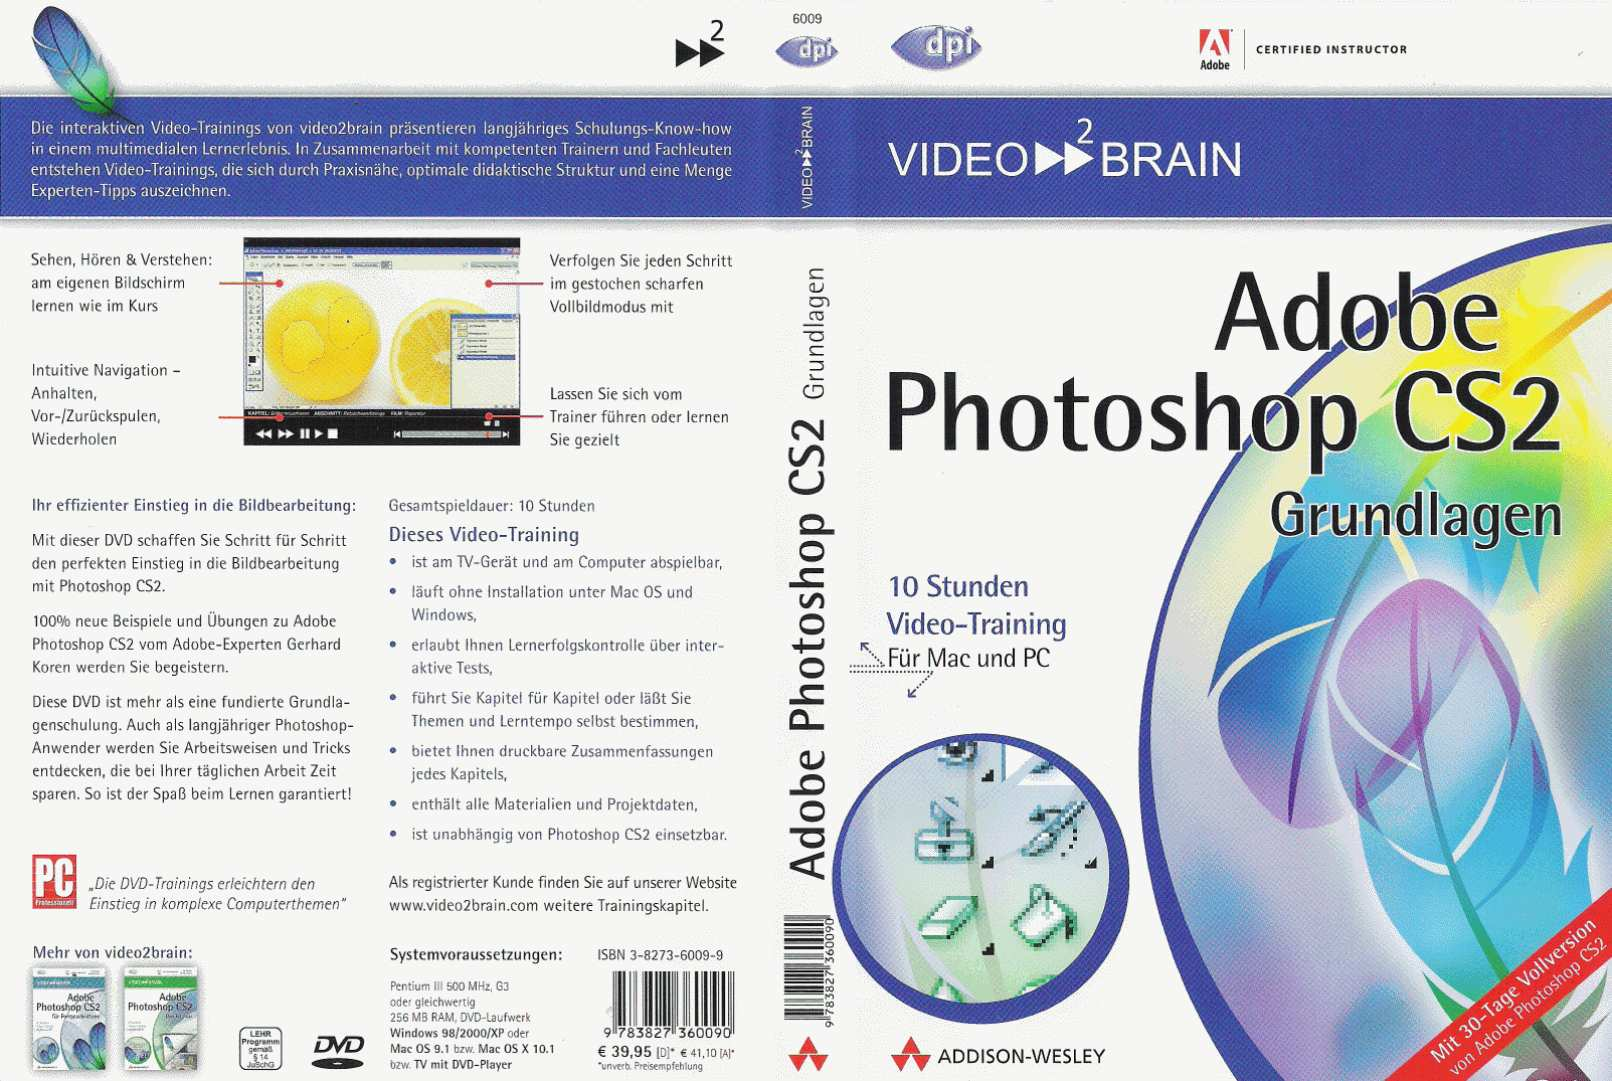 Adobe Free Photoshop Cs2